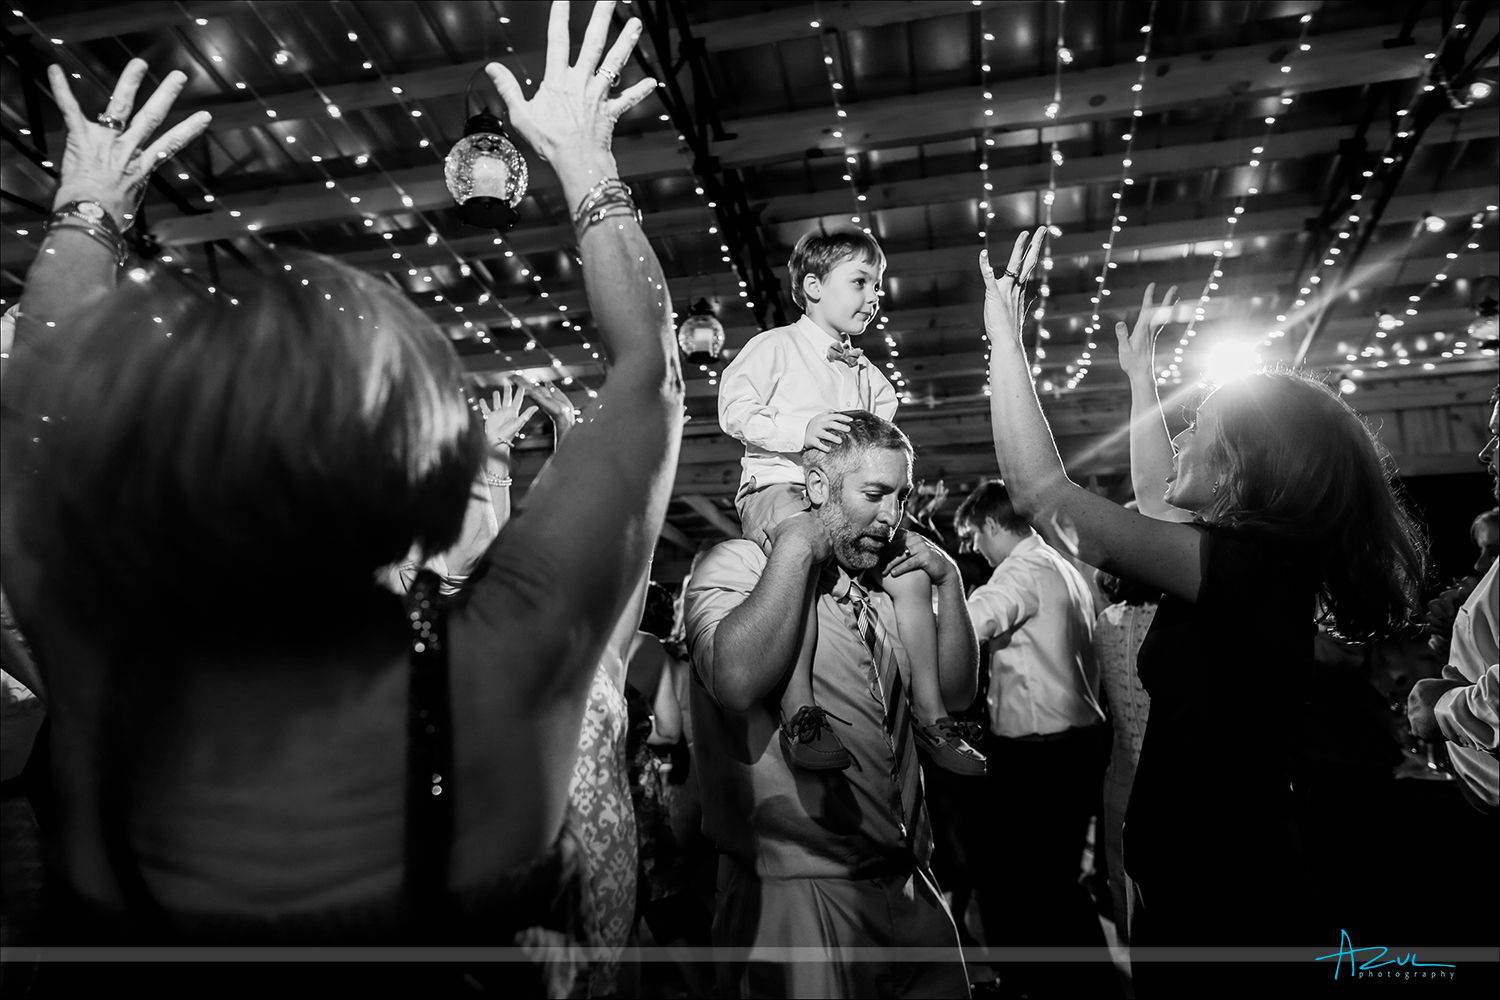 Photographer captures moment of a father and son dancing together inside a barn during a wedding reception in North Carolina